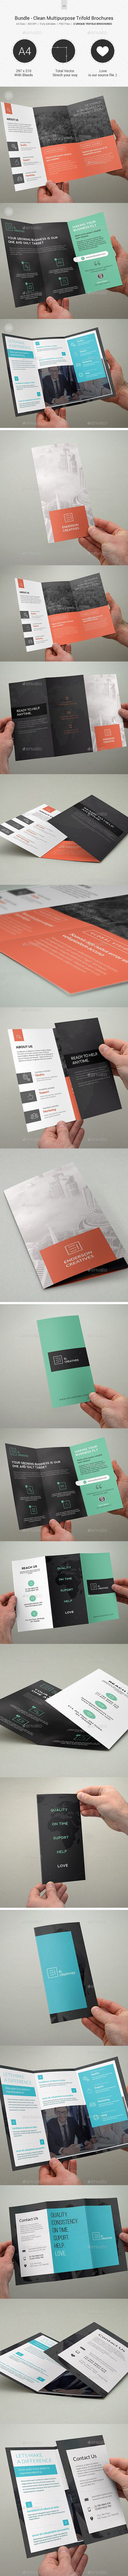 Bundle - Clean Multipurpose Trifold Brochures - 08